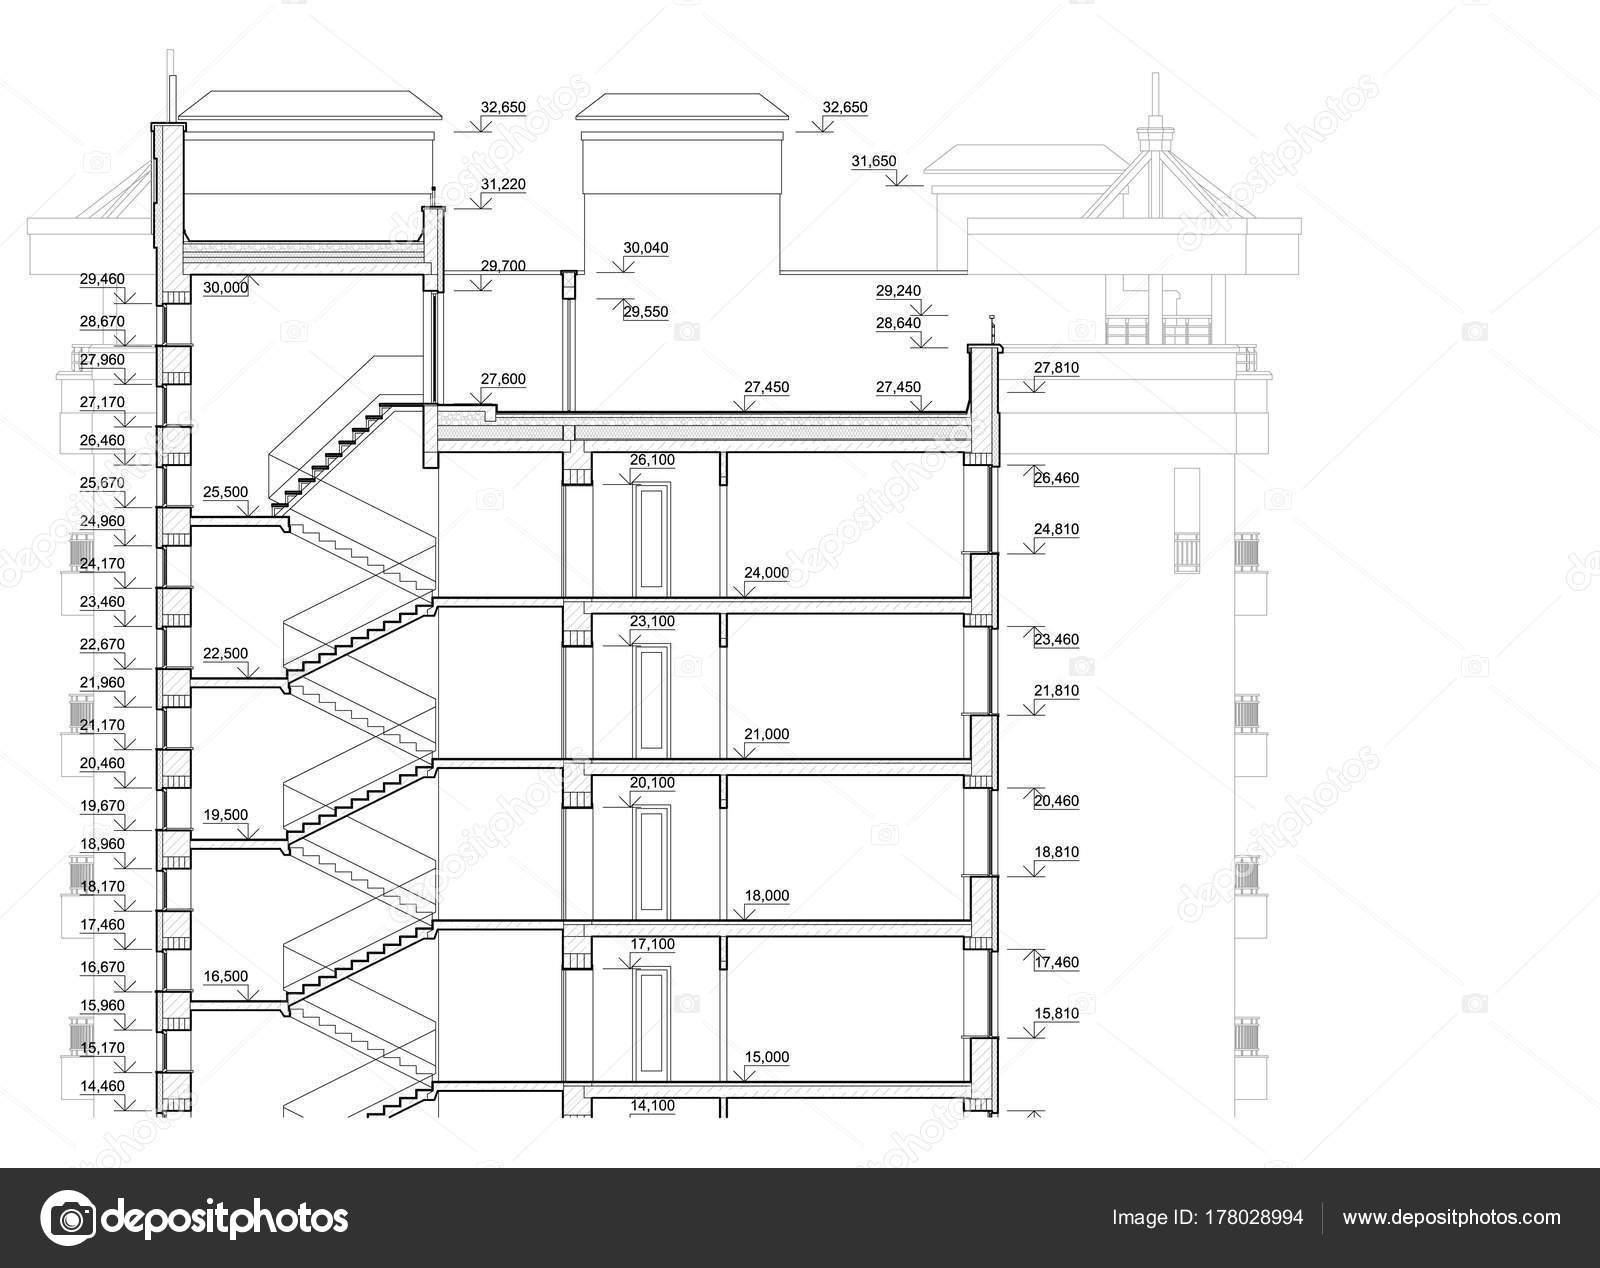 Detailed architectural plan multistory building cross section view detailed architectural plan of multistory building cross section view vector blueprint architectural background vector by mrptica malvernweather Choice Image